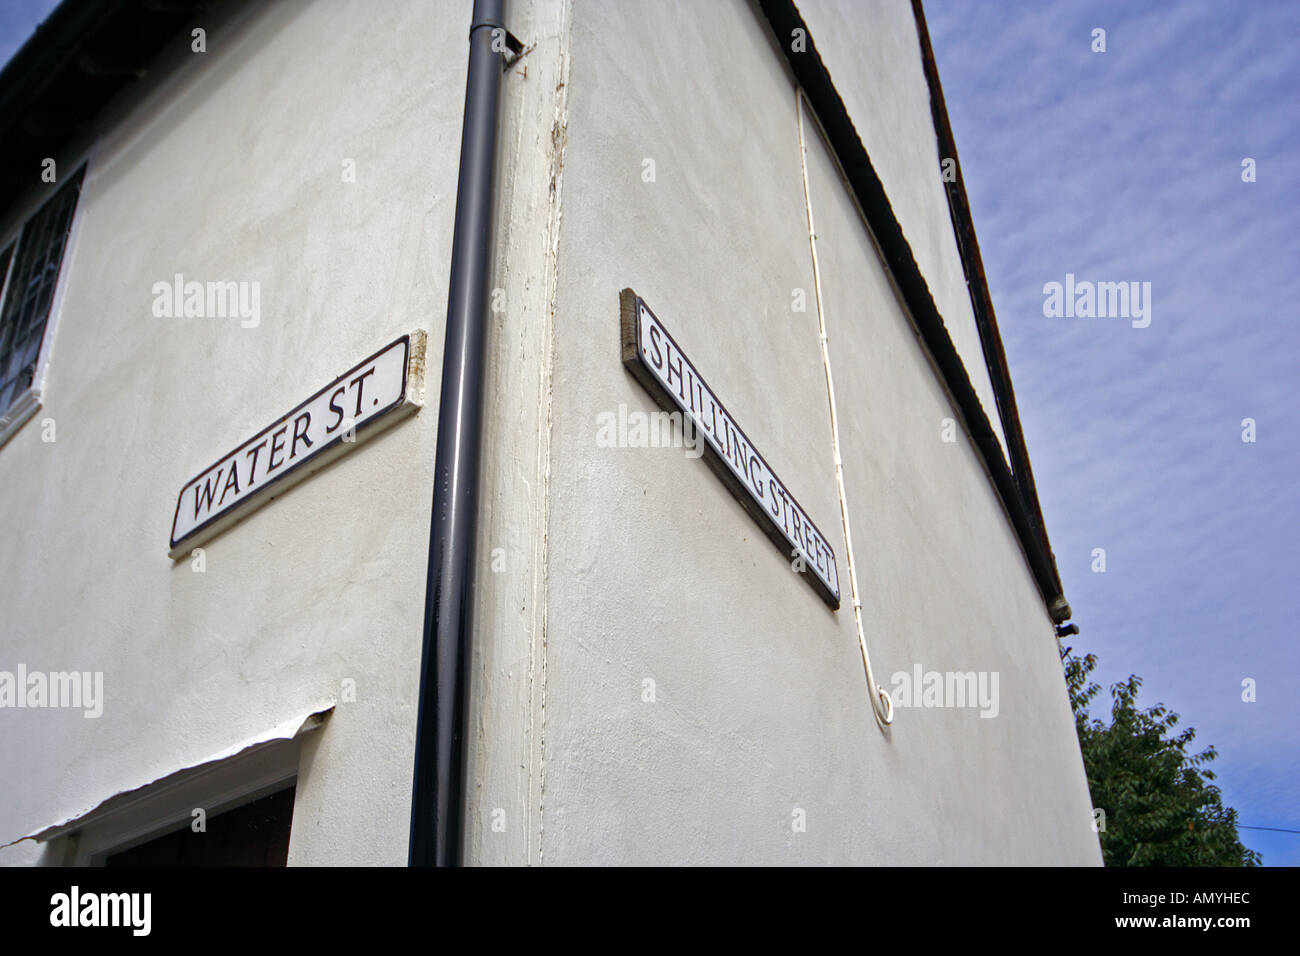 Water Street and Shilling Street Lavenham Suffolk East Anglia UK - Stock Image